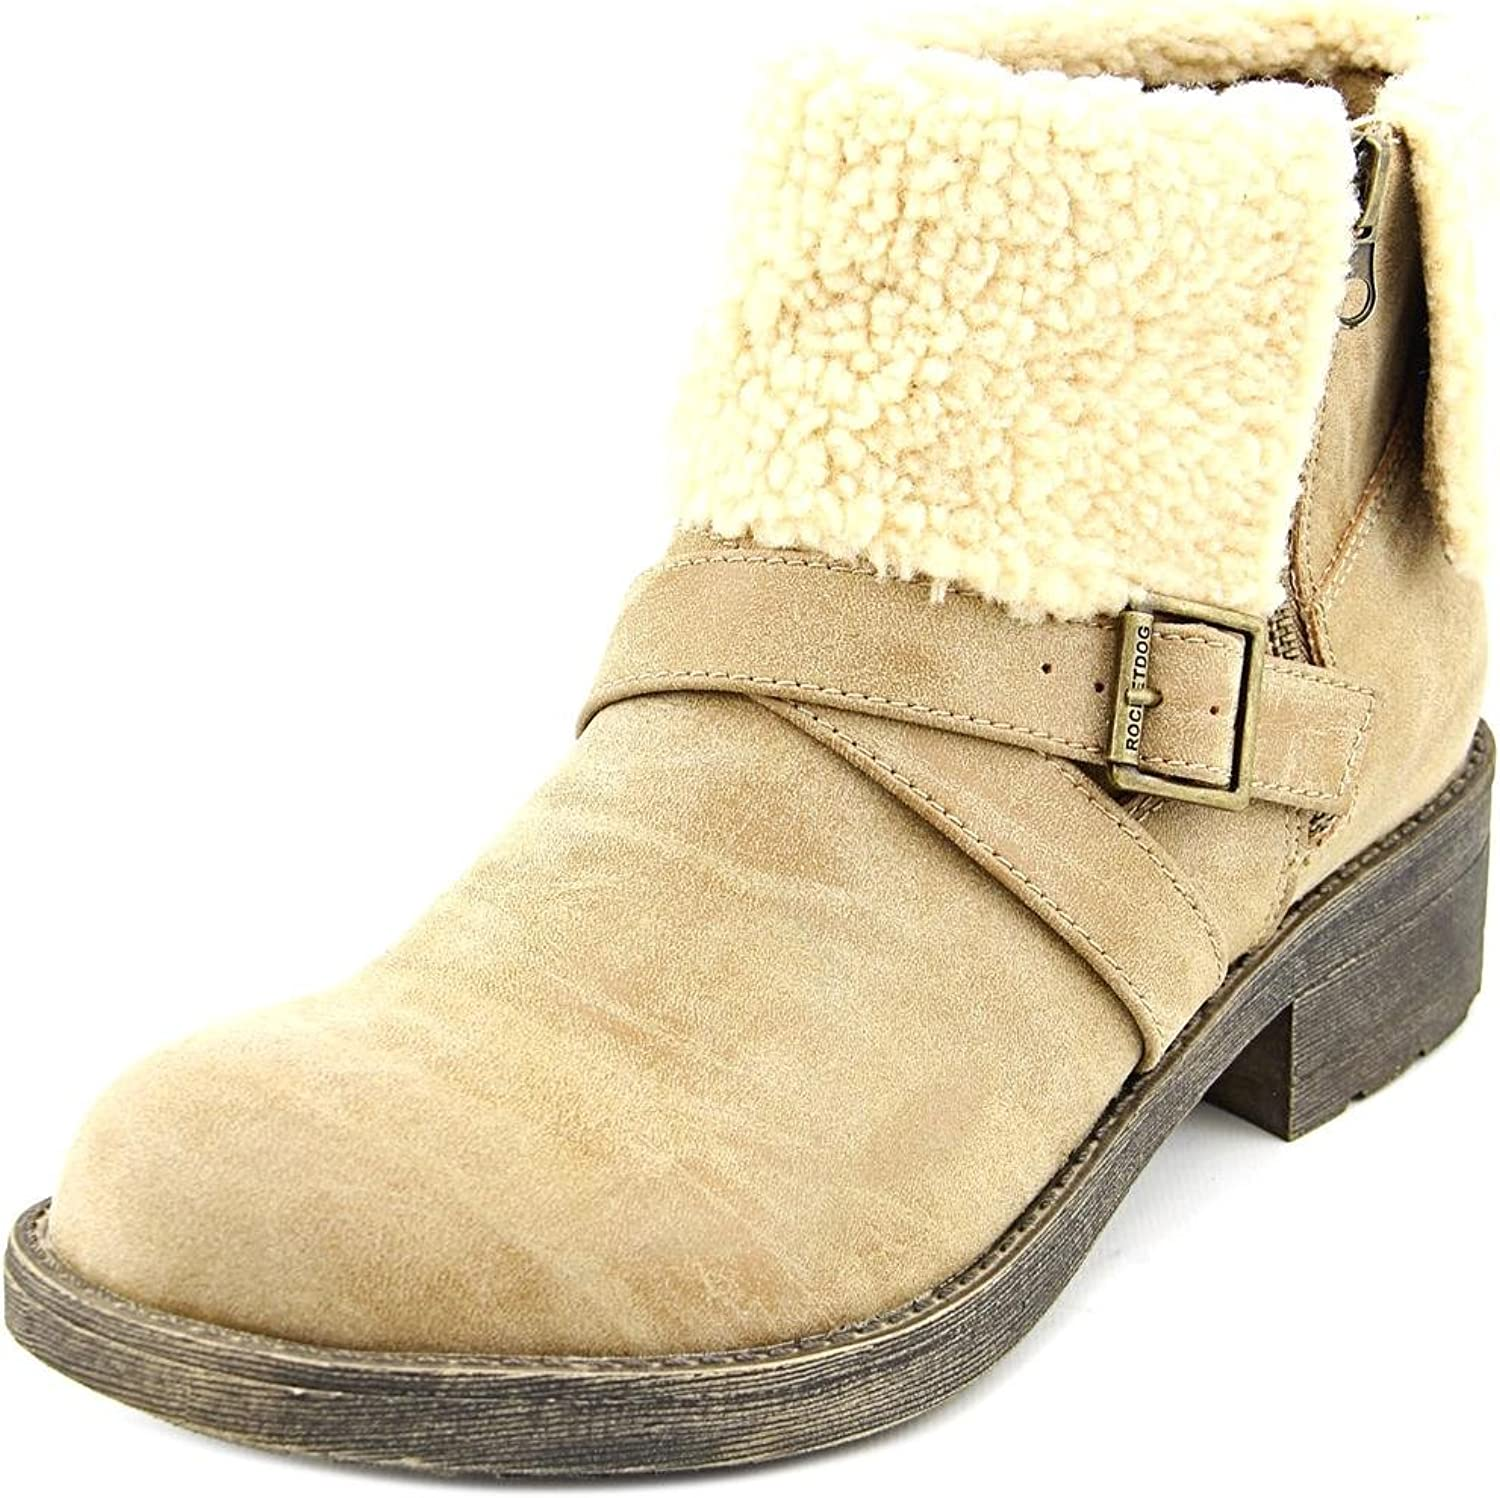 Rocket Dog Tobie Women US 6 Tan Ankle Boot